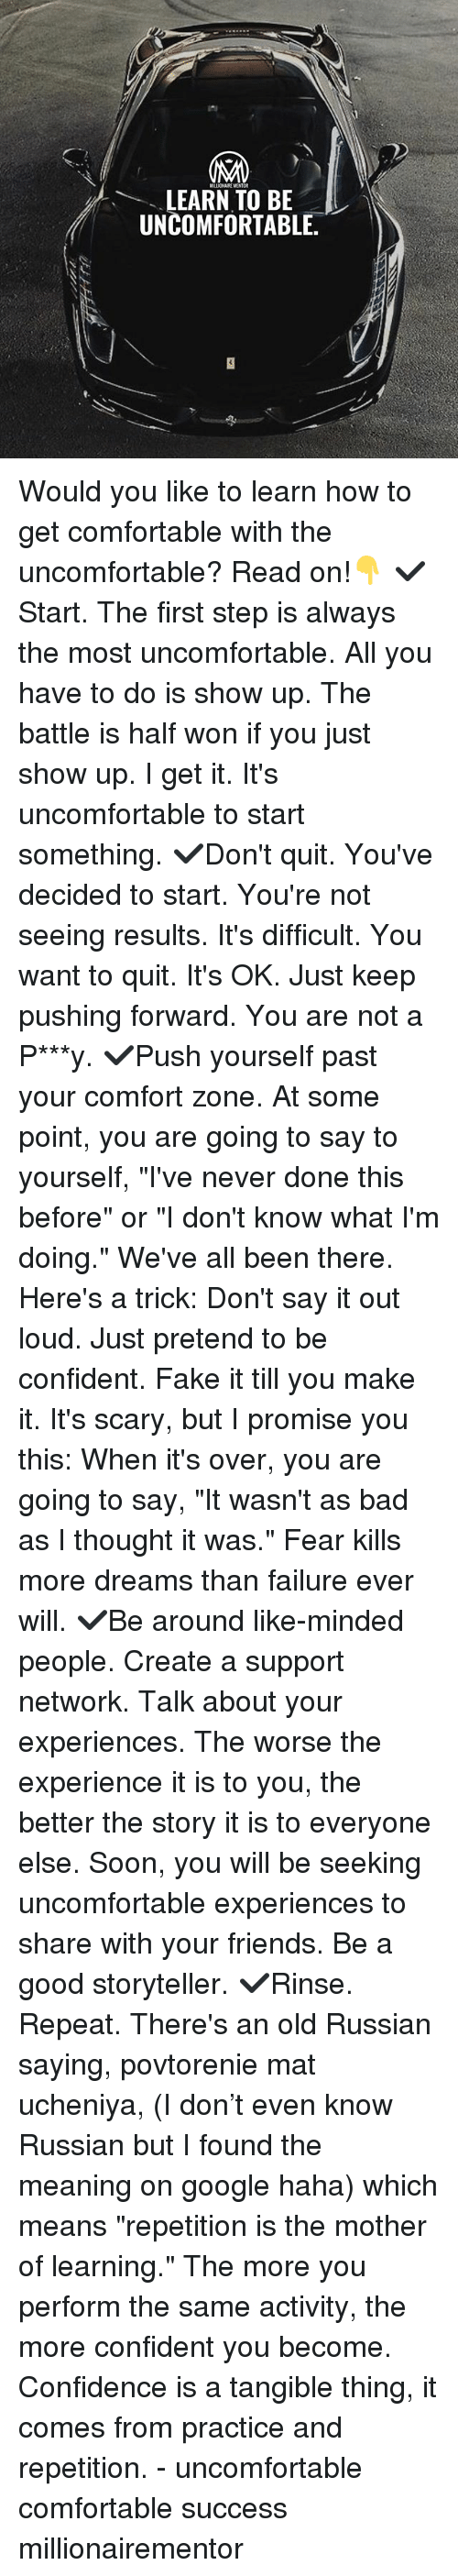 """Bad, Comfortable, and Confidence: LEARN TO BE  UNCOMFORTABLE Would you like to learn how to get comfortable with the uncomfortable? Read on!👇 ✔️Start. The first step is always the most uncomfortable. All you have to do is show up. The battle is half won if you just show up. I get it. It's uncomfortable to start something. ✔️Don't quit. You've decided to start. You're not seeing results. It's difficult. You want to quit. It's OK. Just keep pushing forward. You are not a P***y. ✔️Push yourself past your comfort zone. At some point, you are going to say to yourself, """"I've never done this before"""" or """"I don't know what I'm doing."""" We've all been there. Here's a trick: Don't say it out loud. Just pretend to be confident. Fake it till you make it. It's scary, but I promise you this: When it's over, you are going to say, """"It wasn't as bad as I thought it was."""" Fear kills more dreams than failure ever will. ✔️Be around like-minded people. Create a support network. Talk about your experiences. The worse the experience it is to you, the better the story it is to everyone else. Soon, you will be seeking uncomfortable experiences to share with your friends. Be a good storyteller. ✔️Rinse. Repeat. There's an old Russian saying, povtorenie mat ucheniya, (I don't even know Russian but I found the meaning on google haha) which means """"repetition is the mother of learning."""" The more you perform the same activity, the more confident you become. Confidence is a tangible thing, it comes from practice and repetition. - uncomfortable comfortable success millionairementor"""